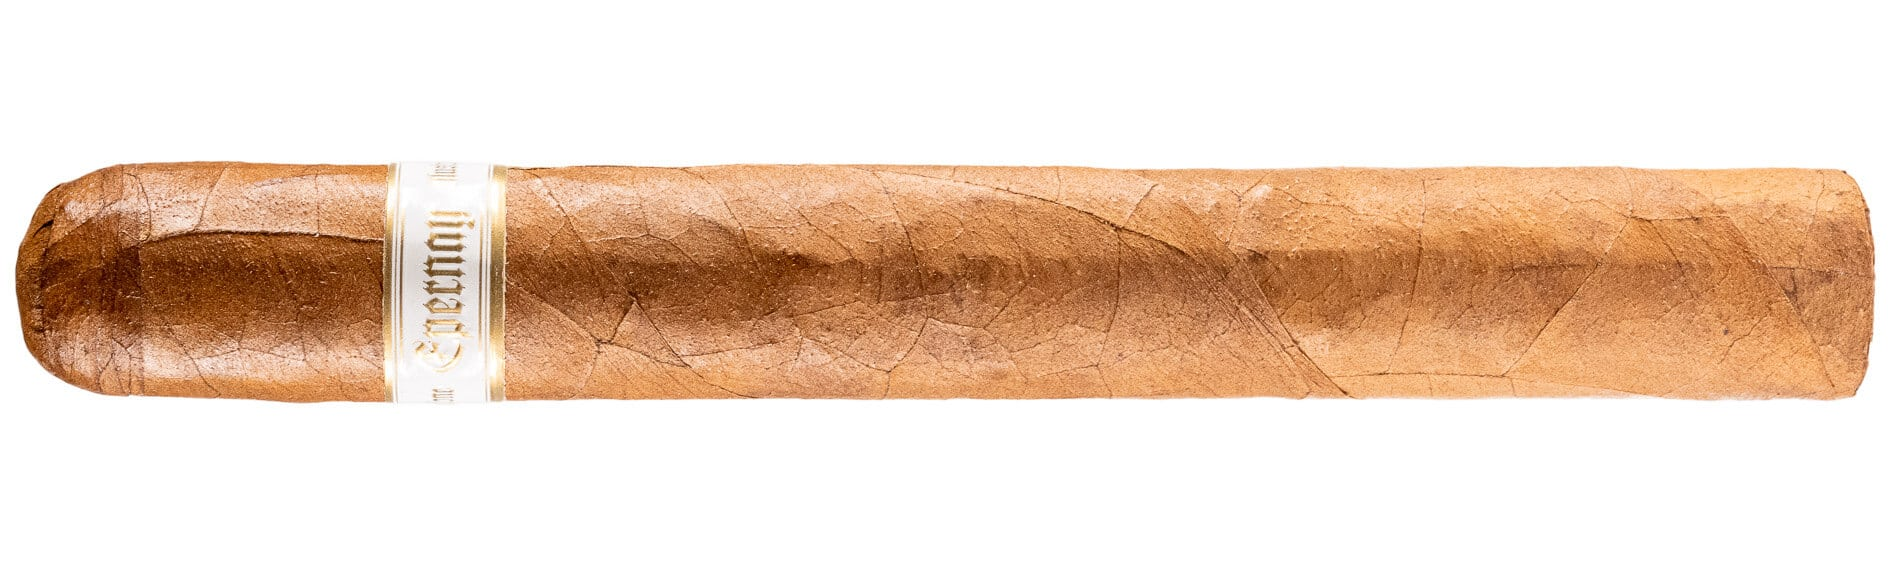 Blind Cigar Review: Illusione | Epernay 10th Anniversary d'Aosta